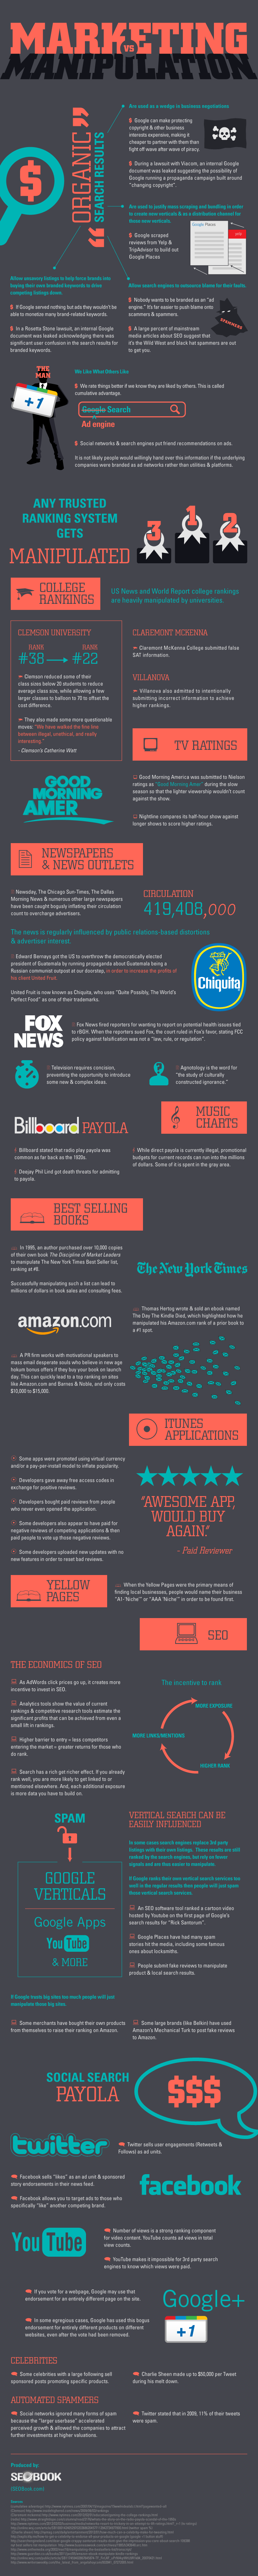 Marketing and Manipulation Infographic.